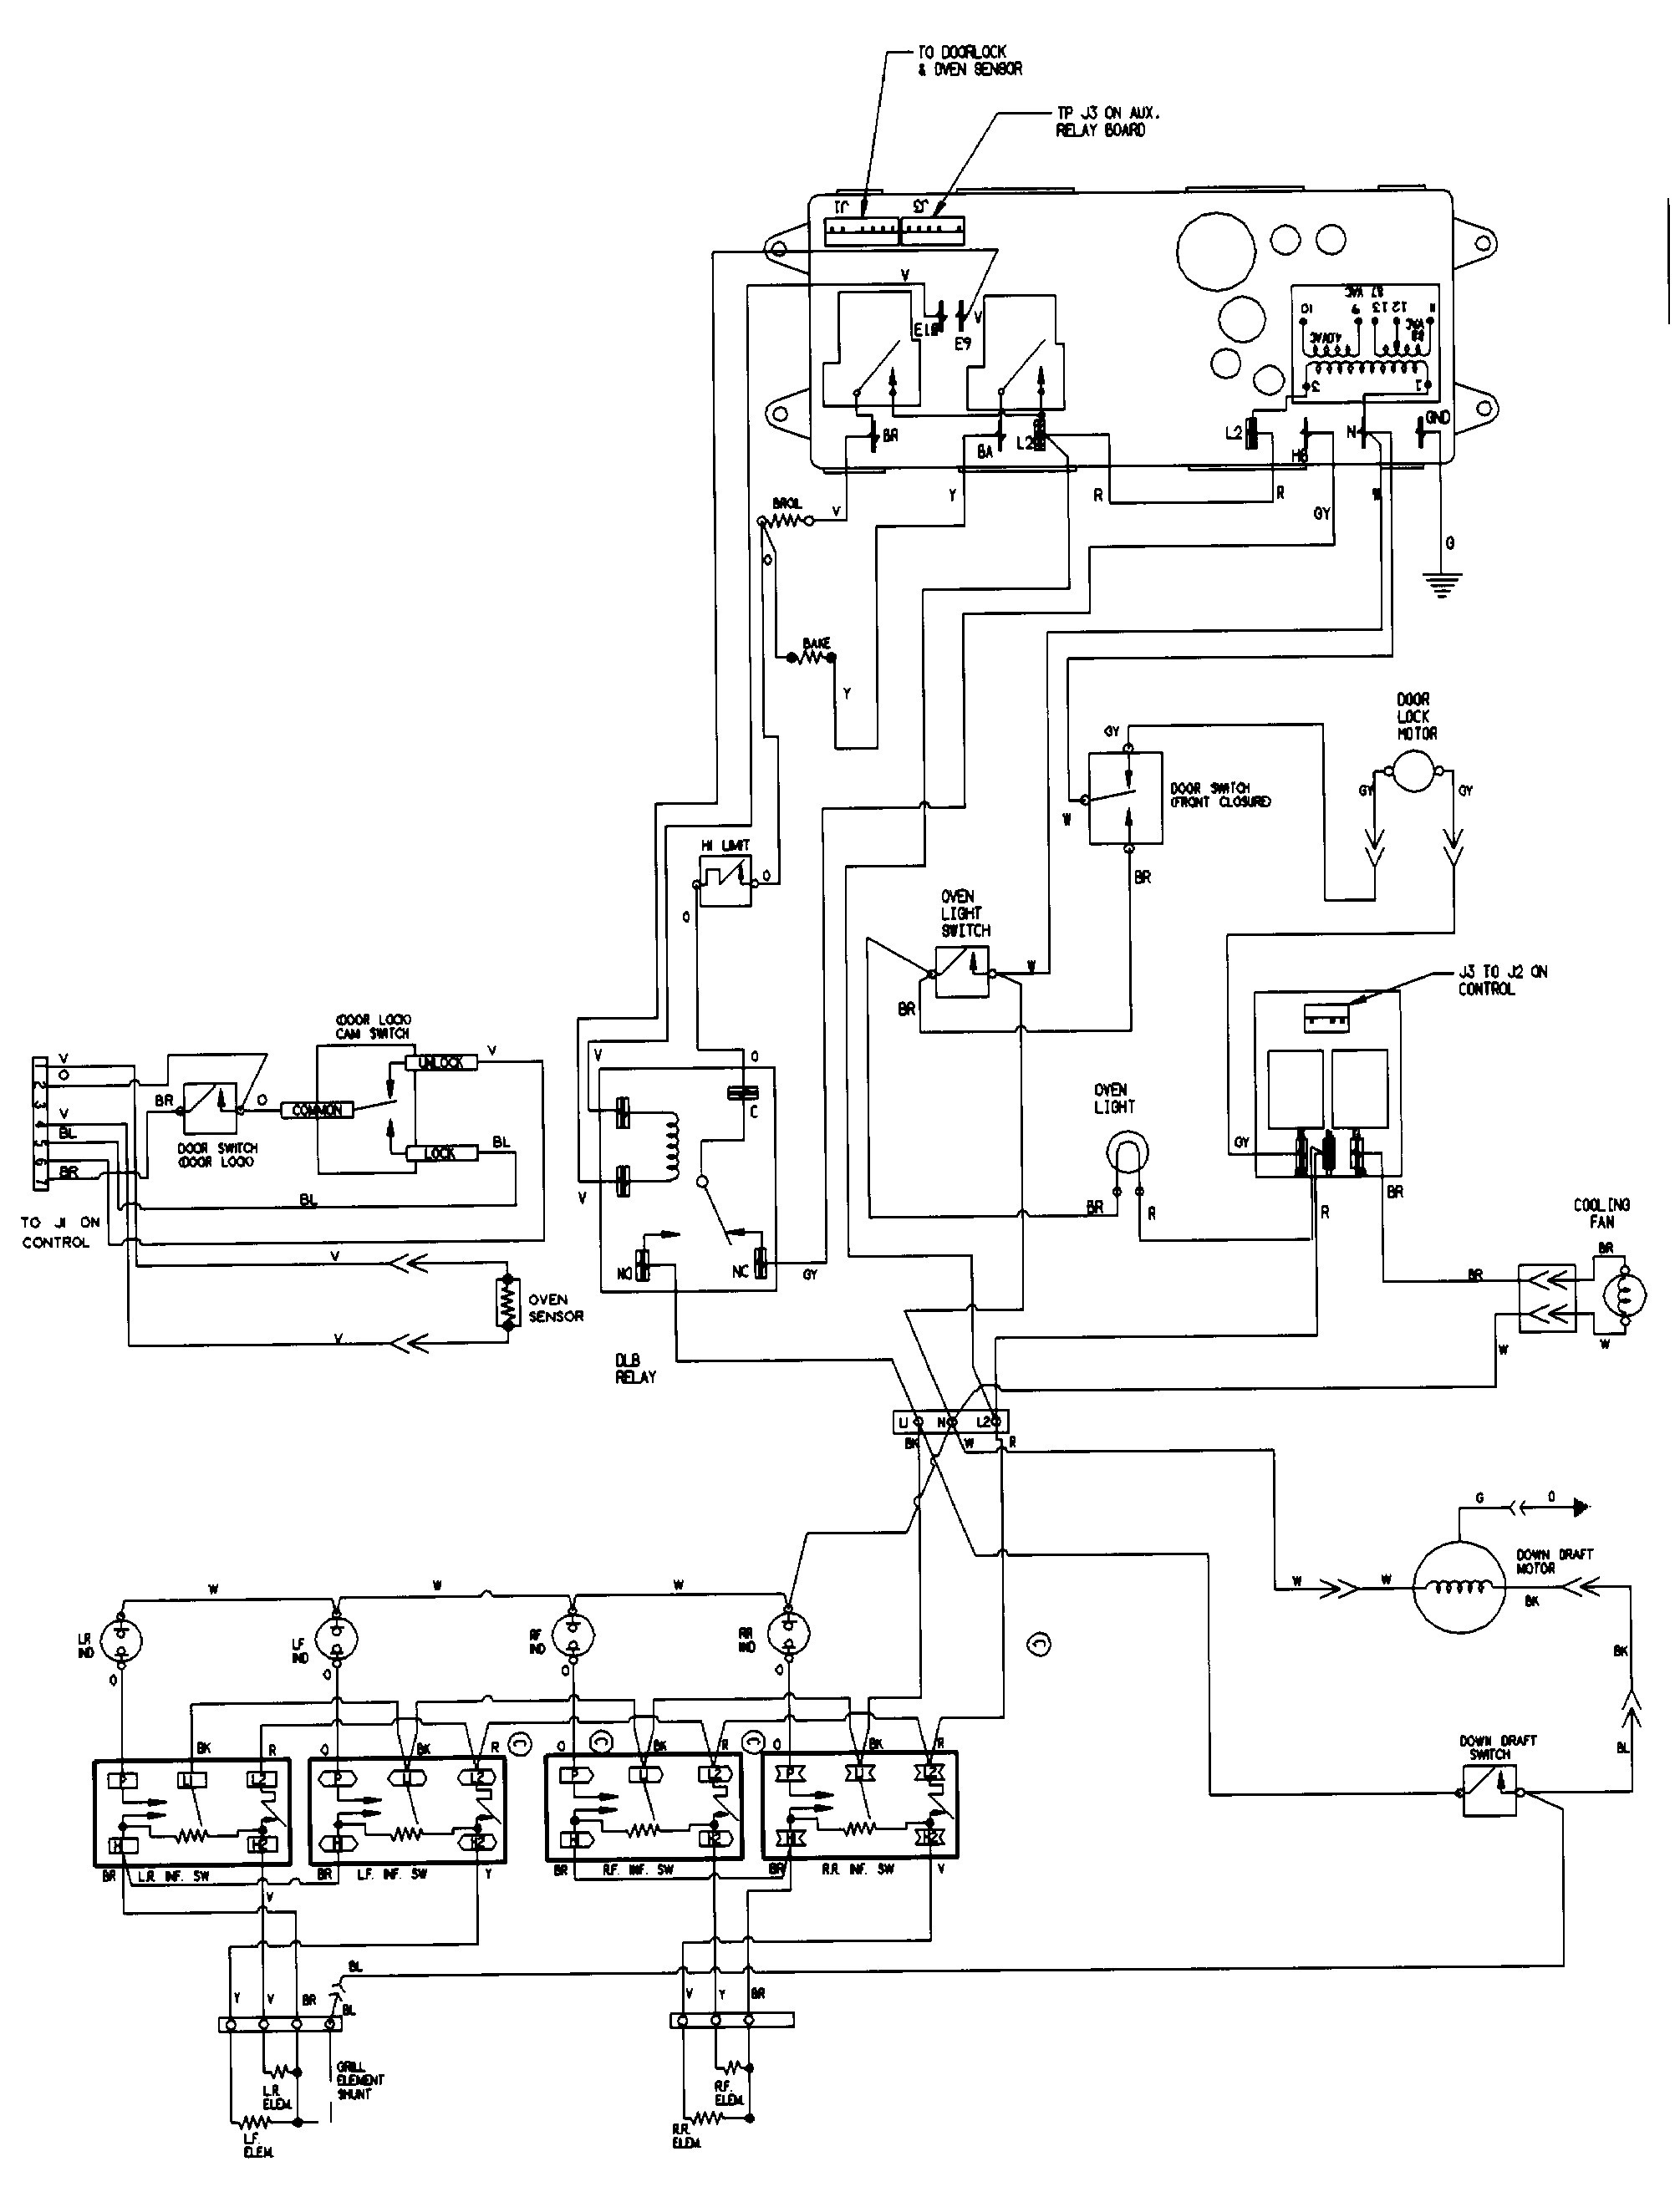 Honda Gx690 Wiring Diagram from detoxicrecenze.com